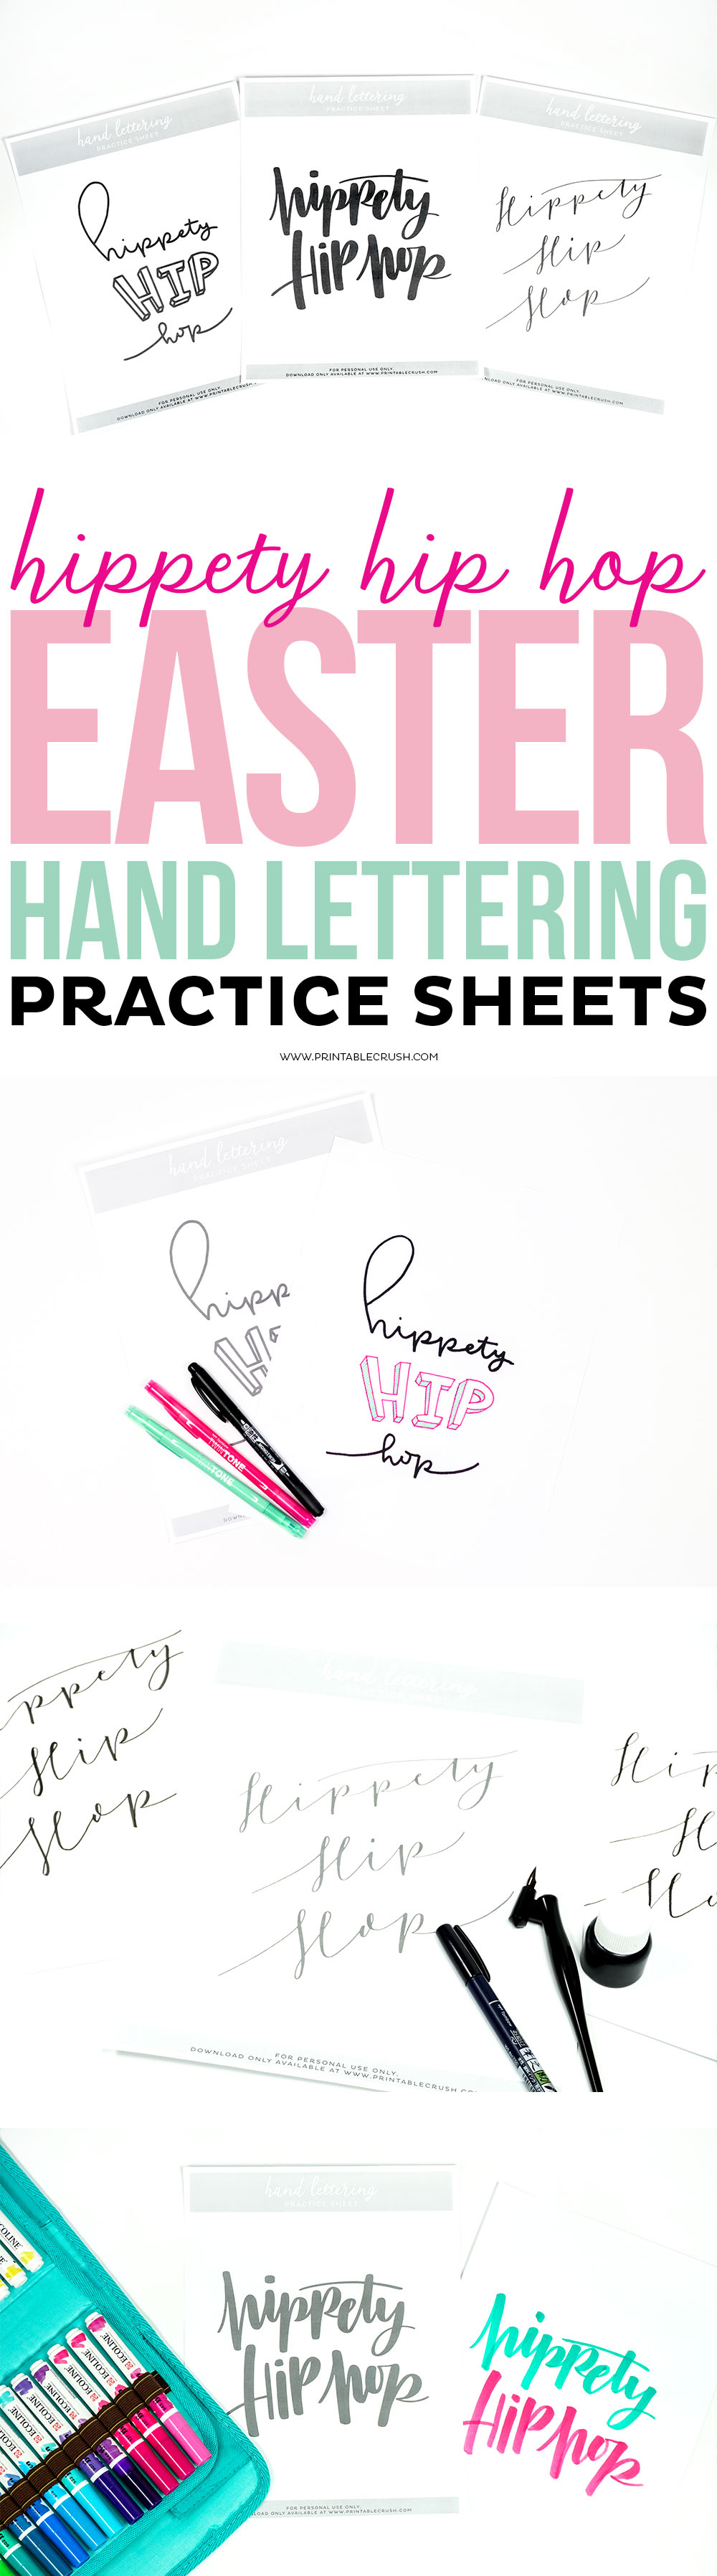 Expand your hand lettering skills with these Hippety Hip Hop Easter Hand Lettering Practice Sheets. You'll be able to practice 3 different lettering styles and I'll teach you the best brush pens and calligraphy tools to use.